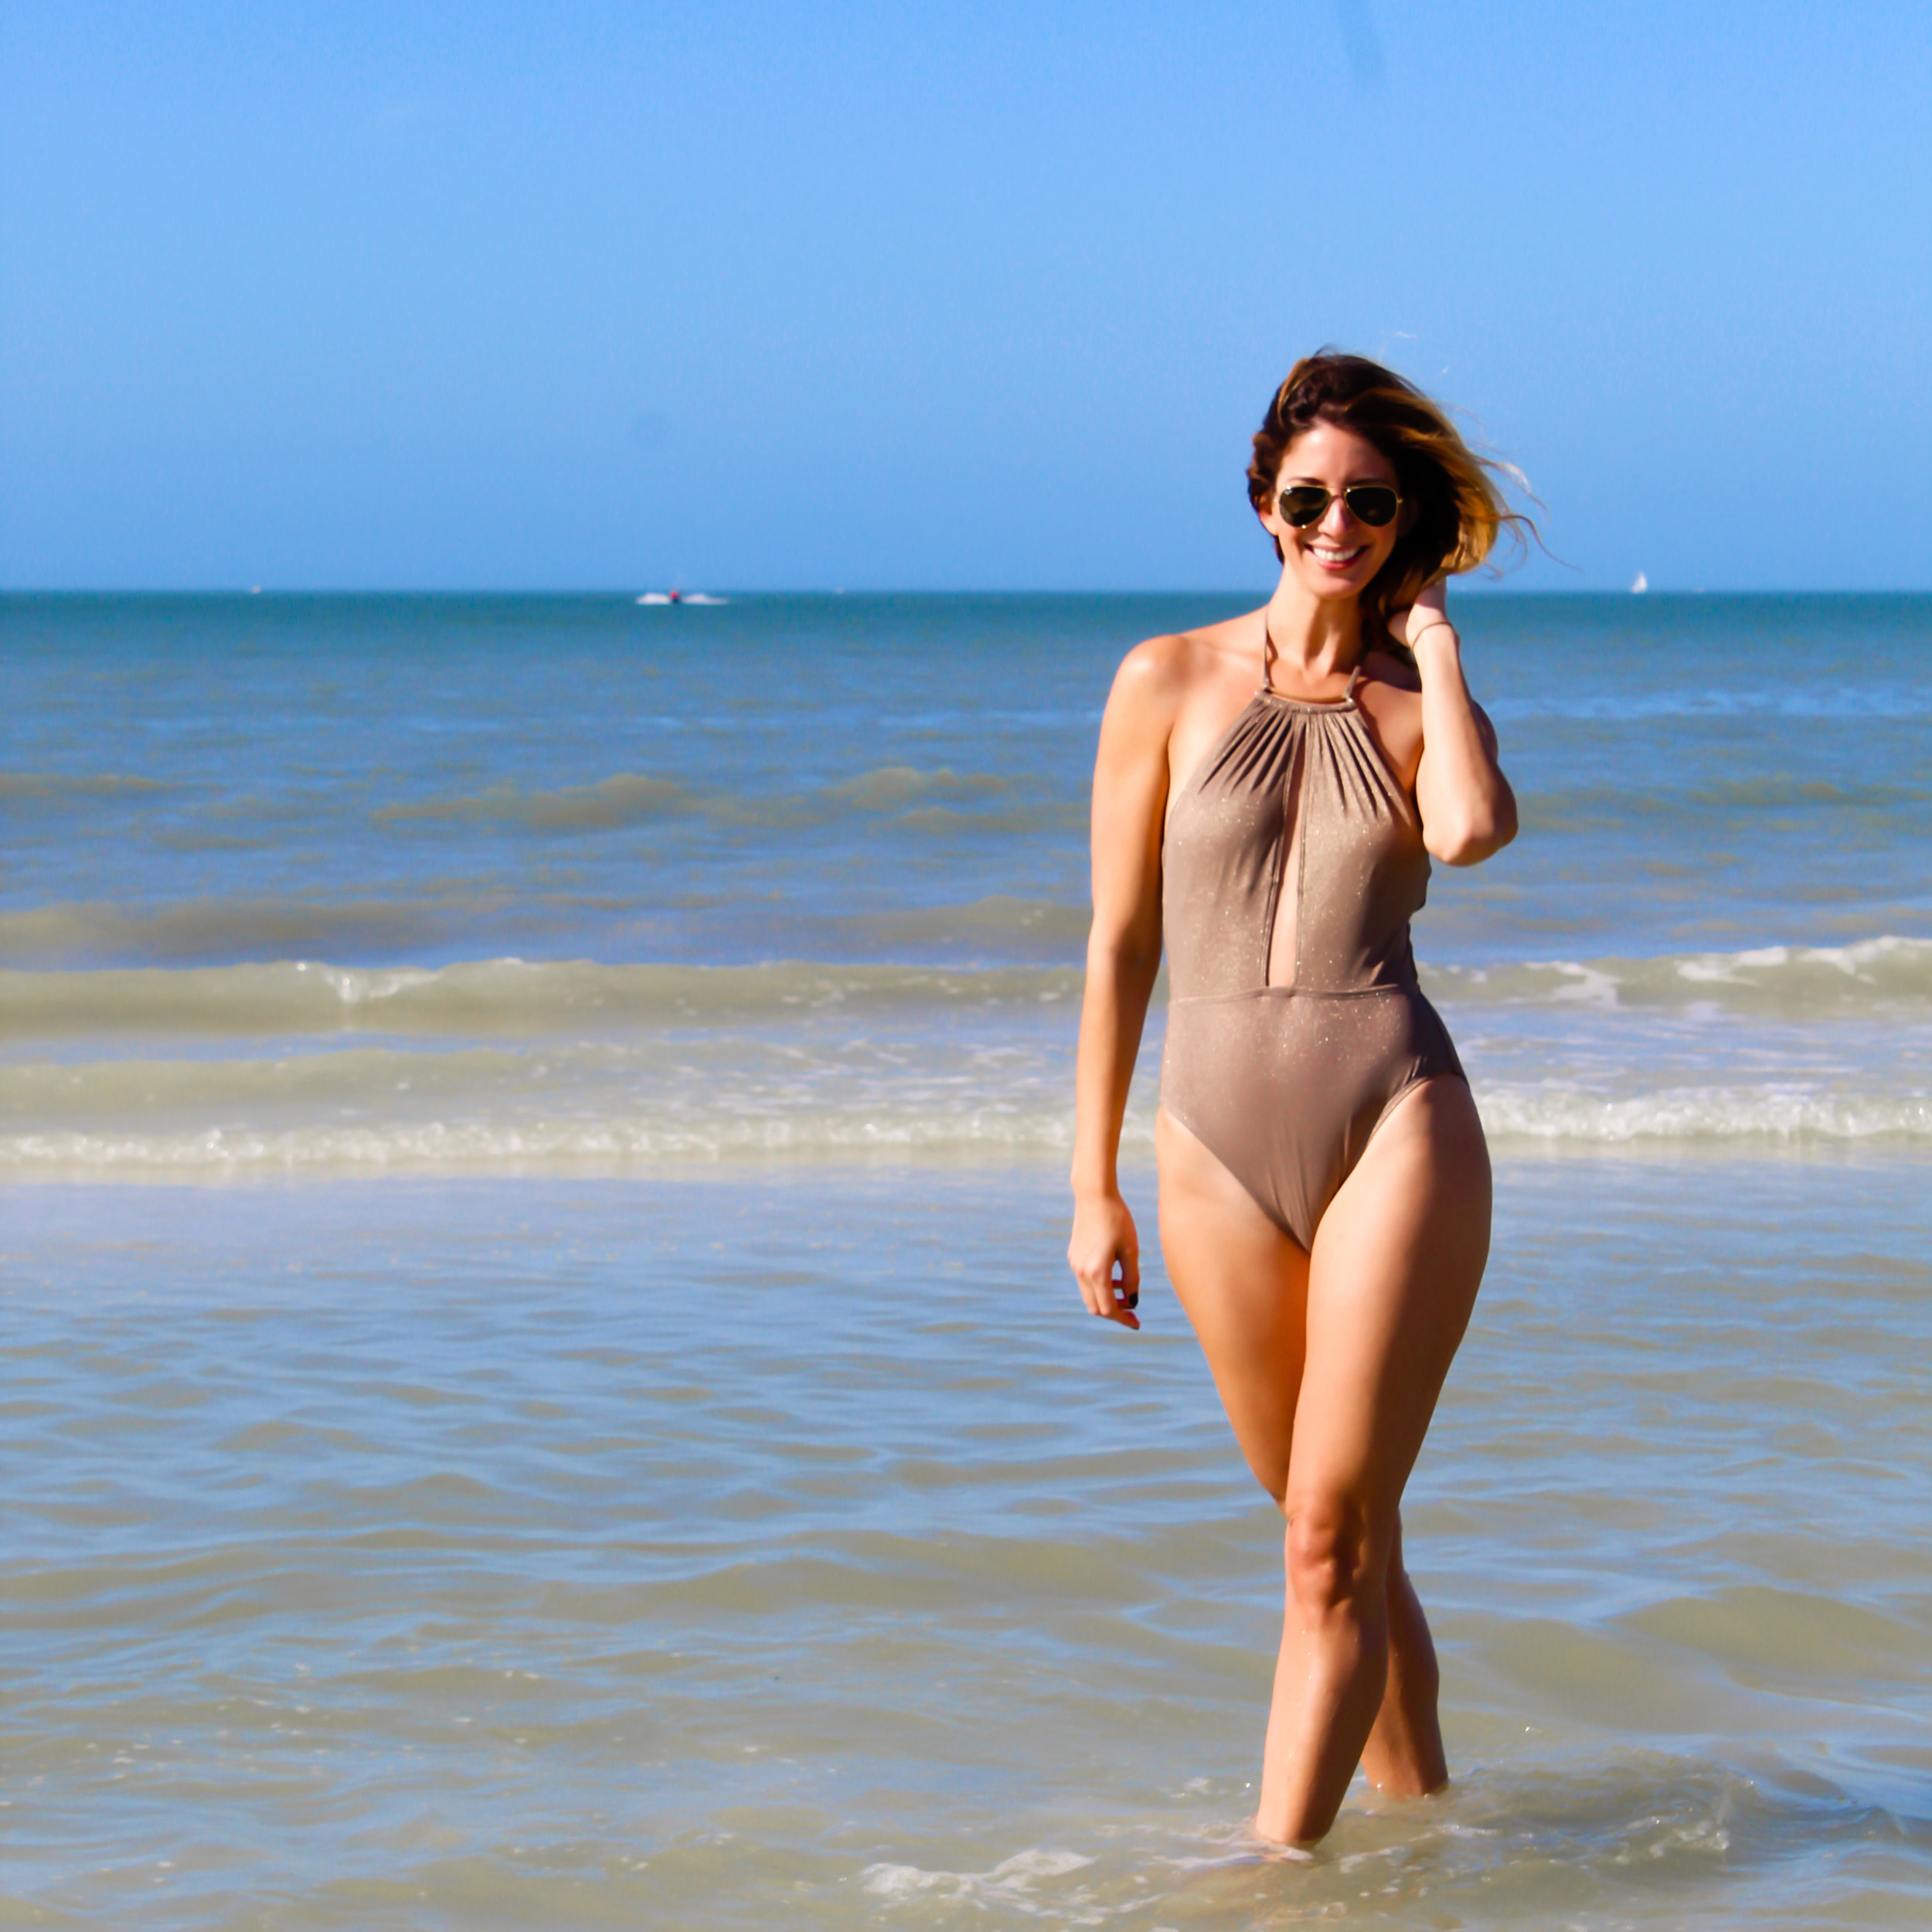 Swimsuit:  Kenneth Cole  Sunglasses:  Ray Ban